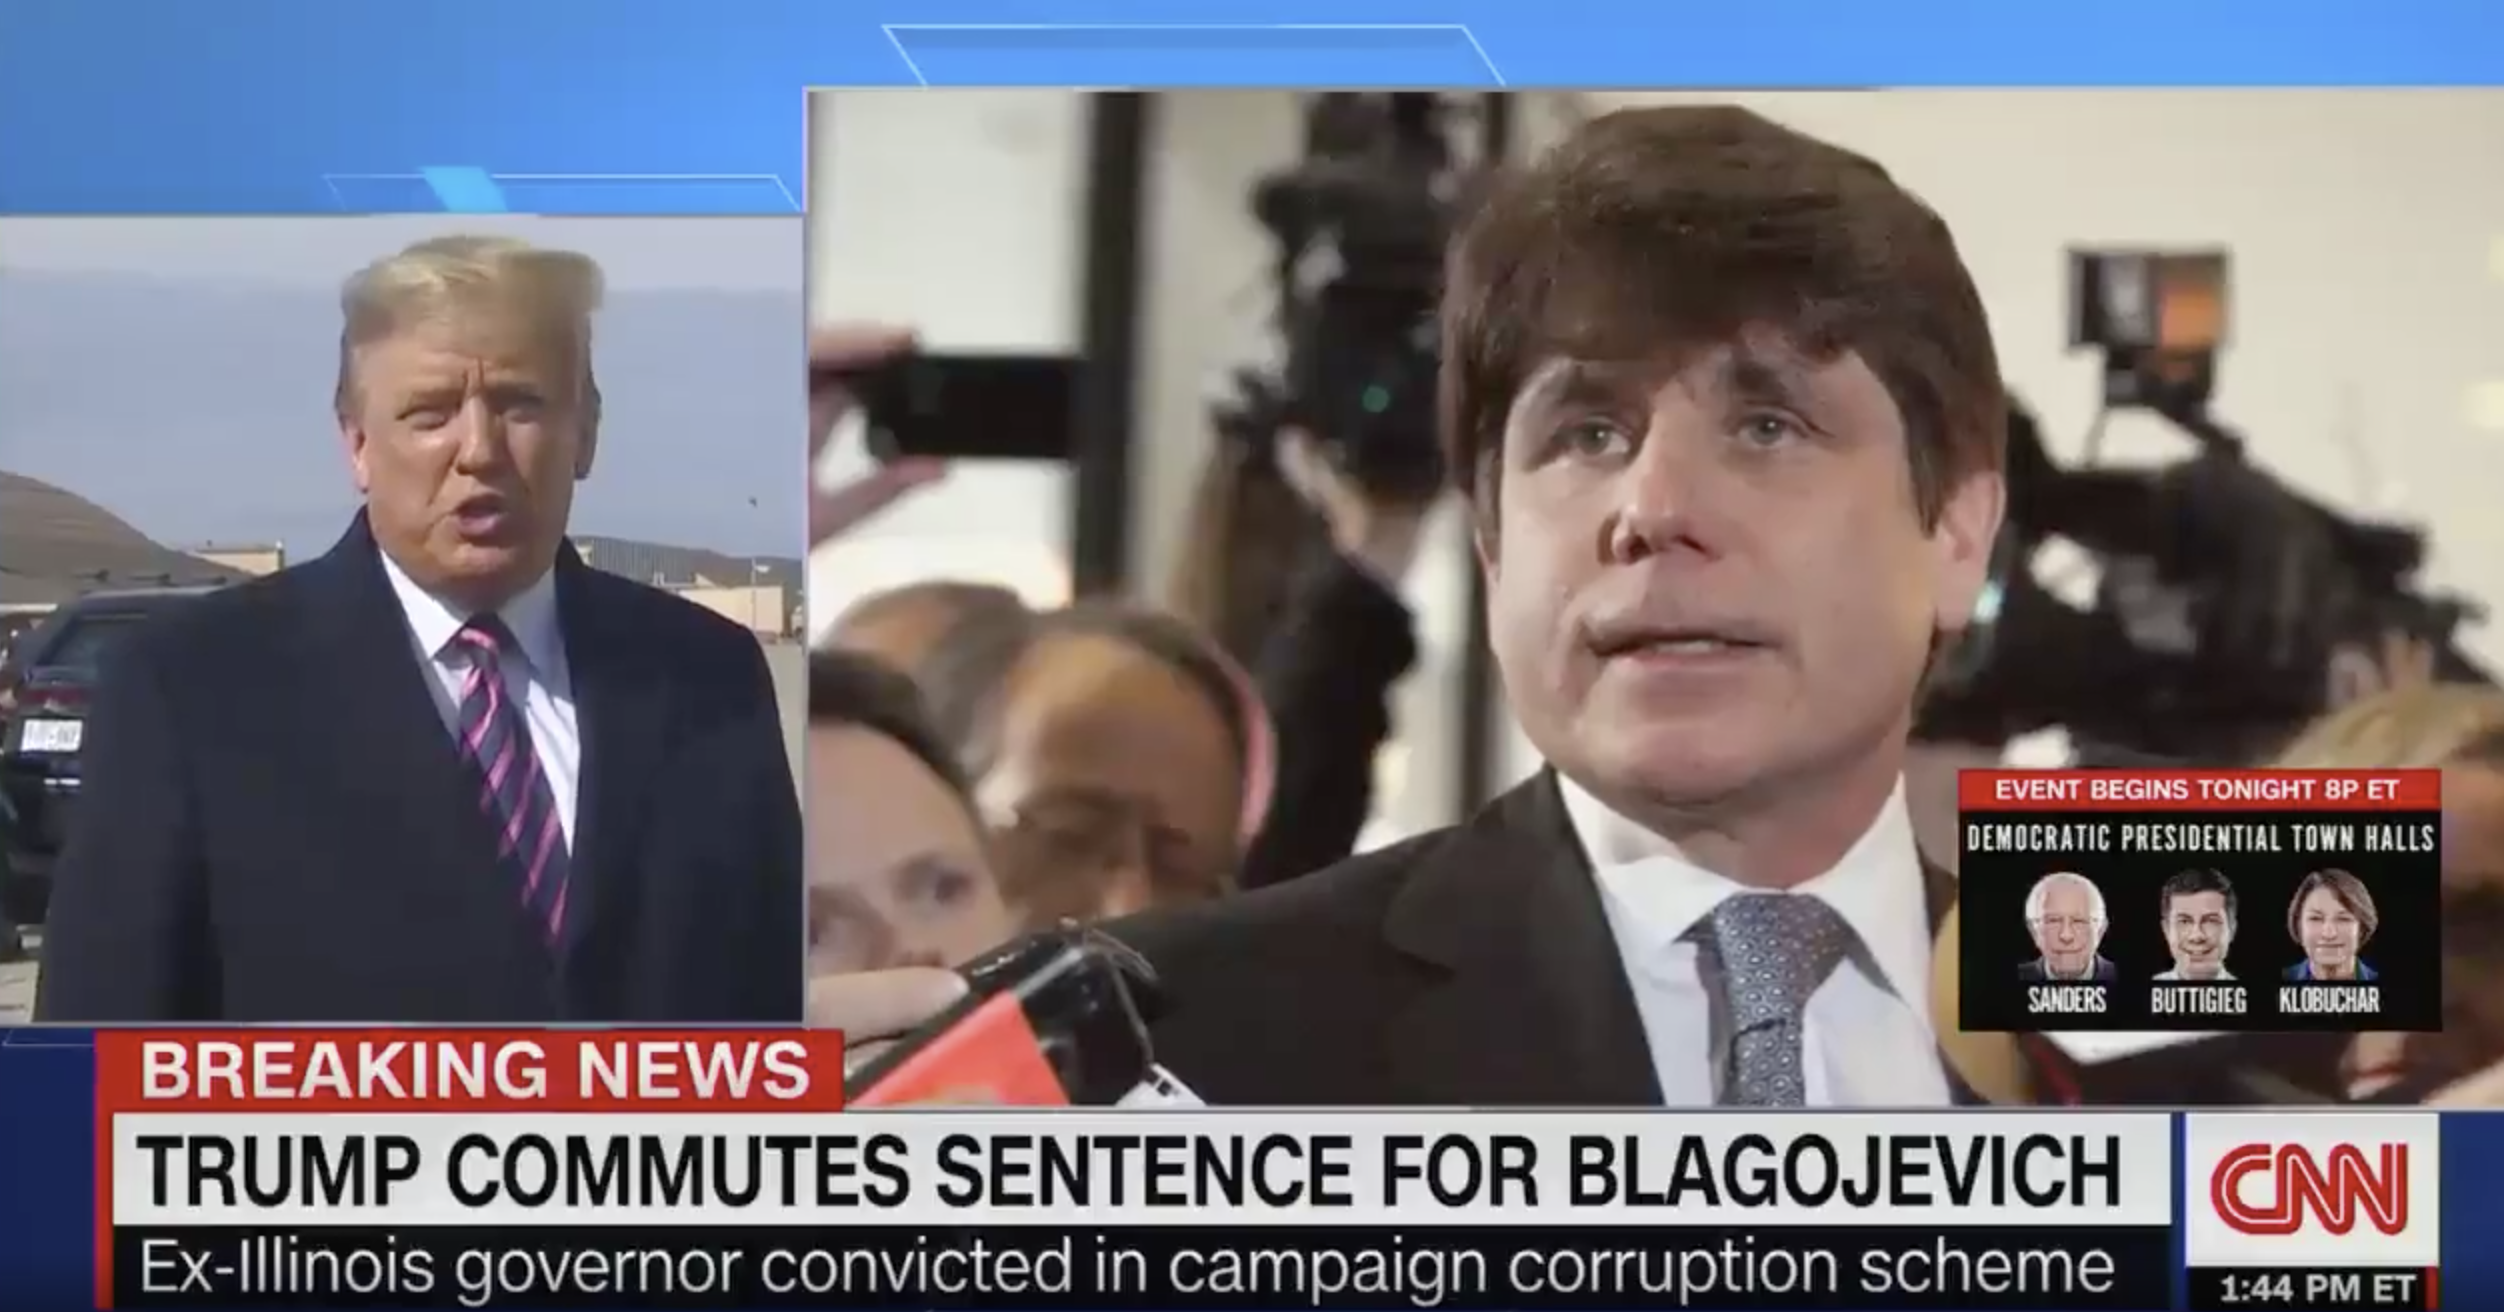 Trump Explains Blagojevich Pardon: 'I Watched His Wife' On Fox News